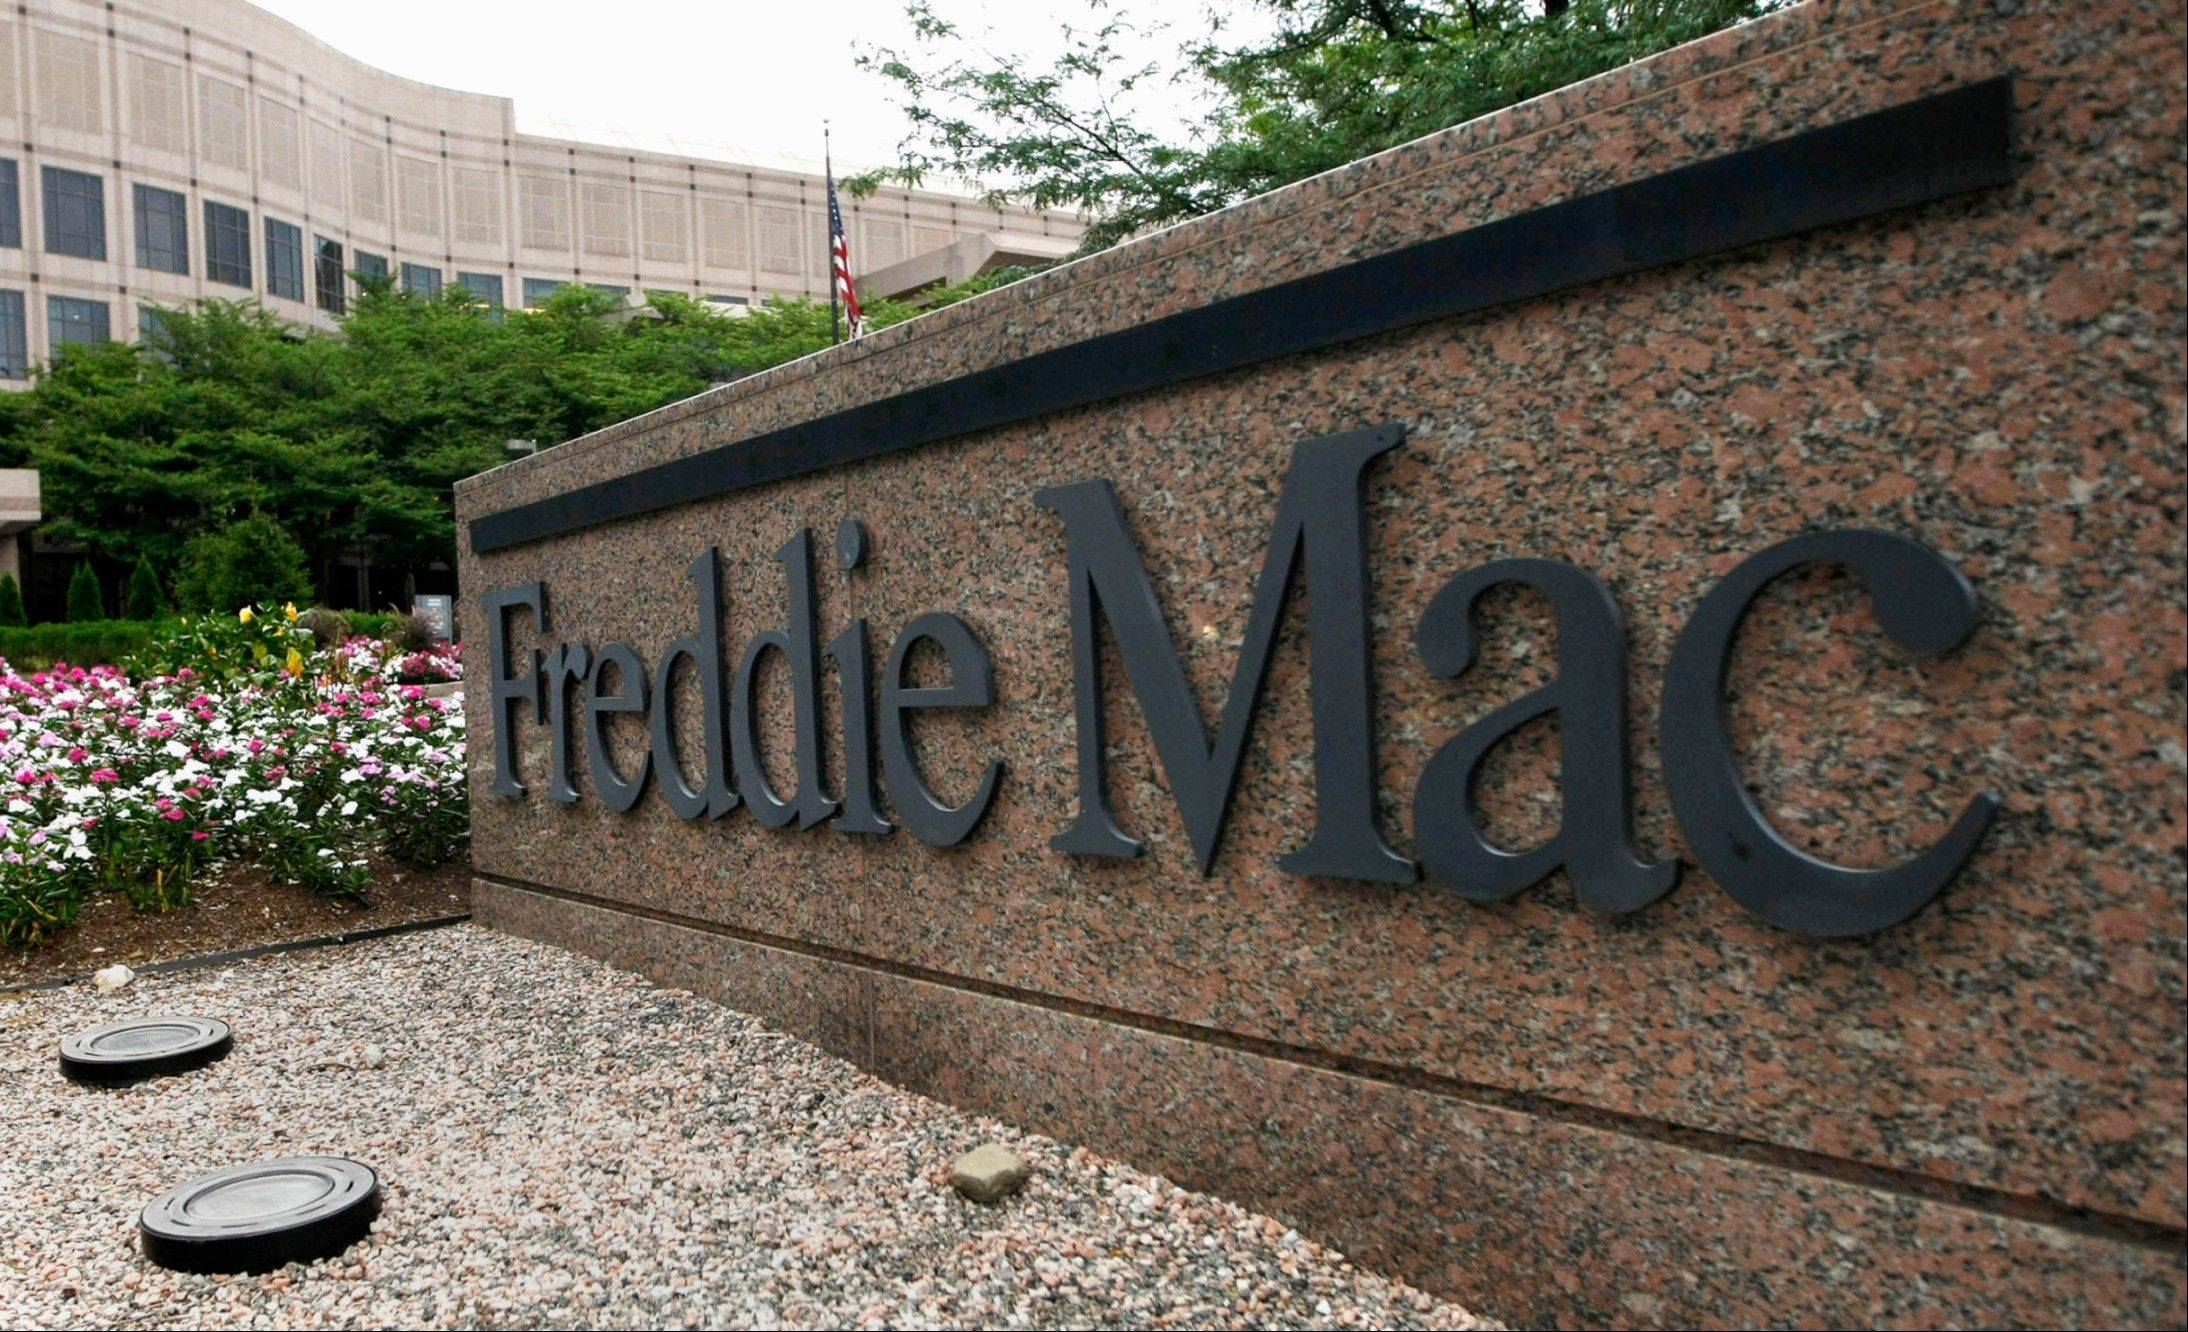 Freddie Mac posted a gain for the second quarter and isn't requesting any additional federal for the period. McLean, Va.-based Freddie Mac said Tuesday, Aug. 7, 2012 that its net income attributable to common shareholders was $1.2 billion, or 37 cents per share, in the April-June period.